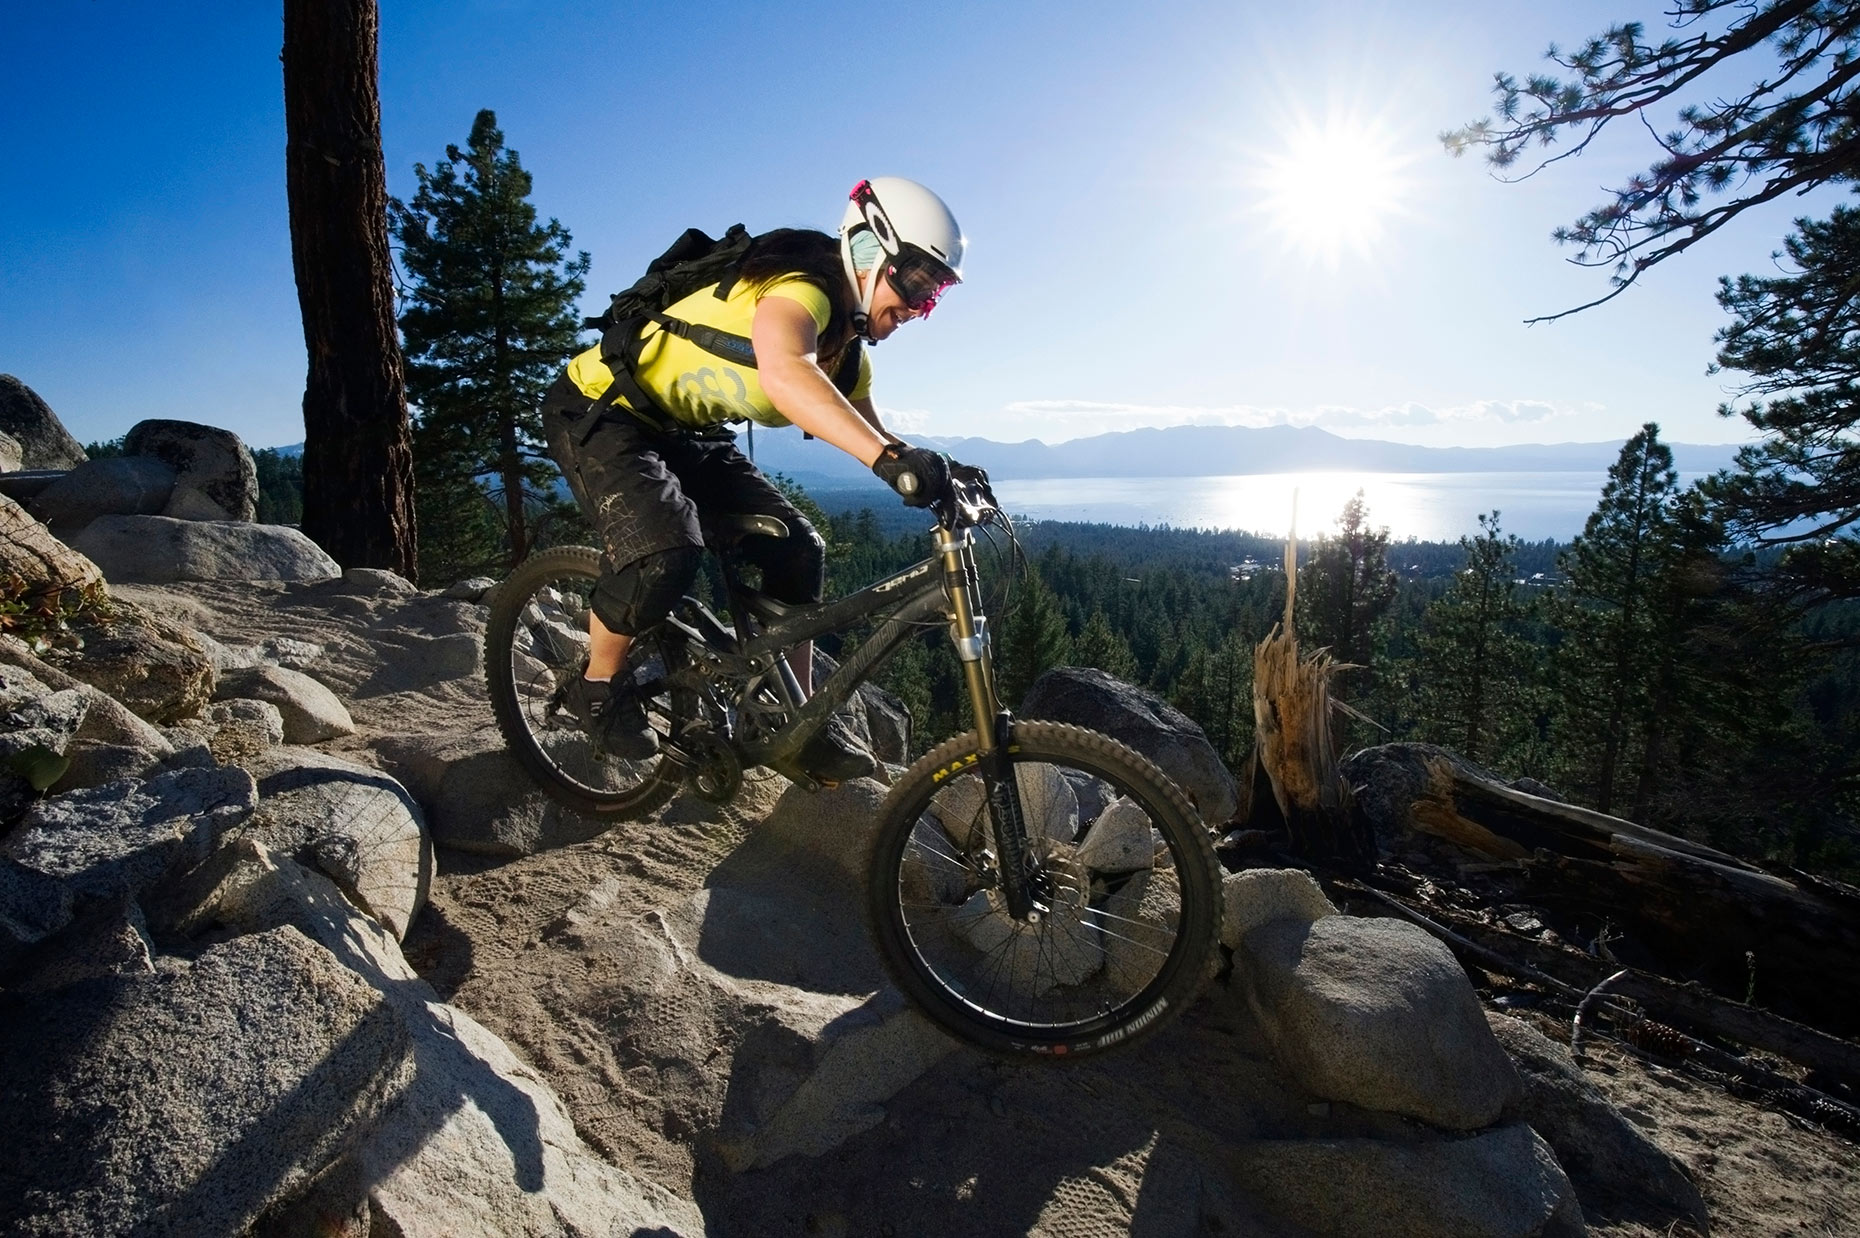 Mountain Biking The  Van Sickle Trail - South Lake Tahoe, California